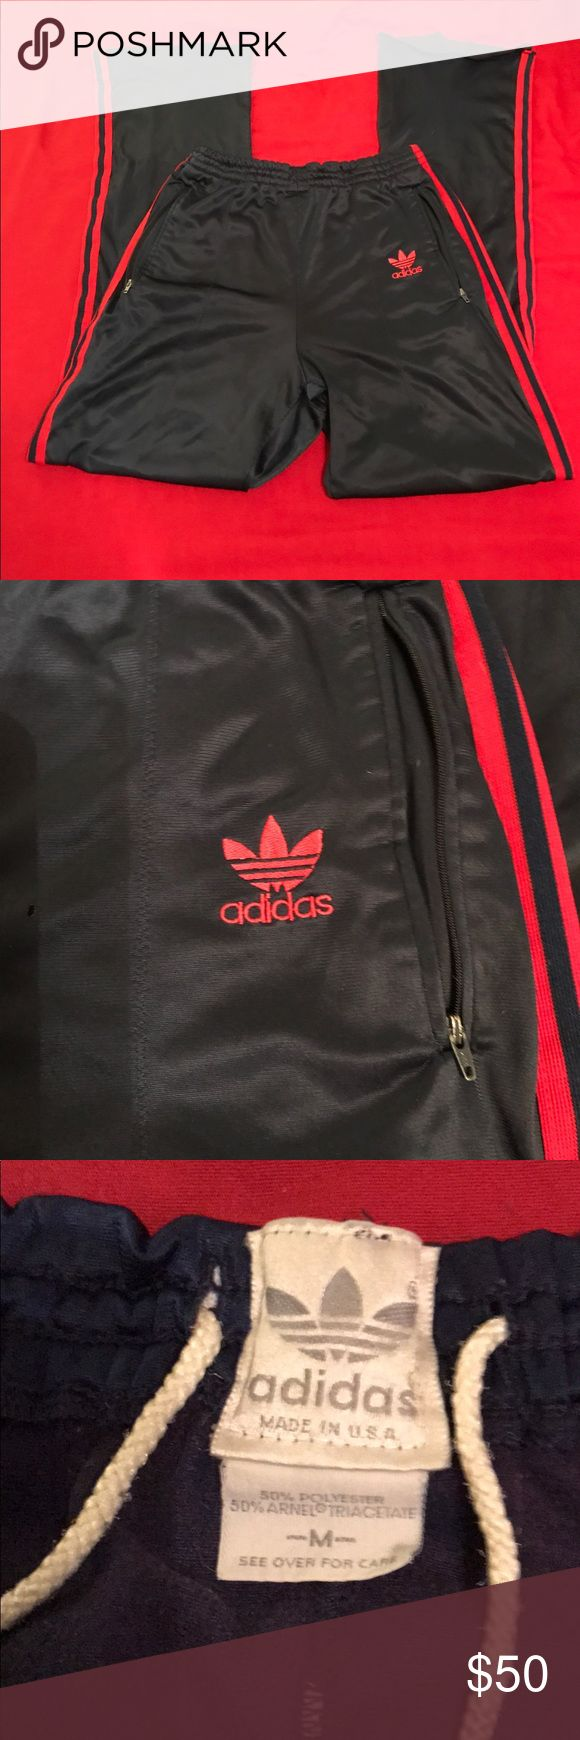 """TRUE VINTAGE ADIDAS SUPERSTAR TRACK PANTS TREFOIL These are worn and have been previously loved. Small hole that has been """"repaired"""", left leg hem has come undone. I would say that they fit like a Men's Extra Small/Women's Small. Two zippered side pockets. These are NAVY BLUE AND RED. adidas Pants Track Pants & Joggers"""